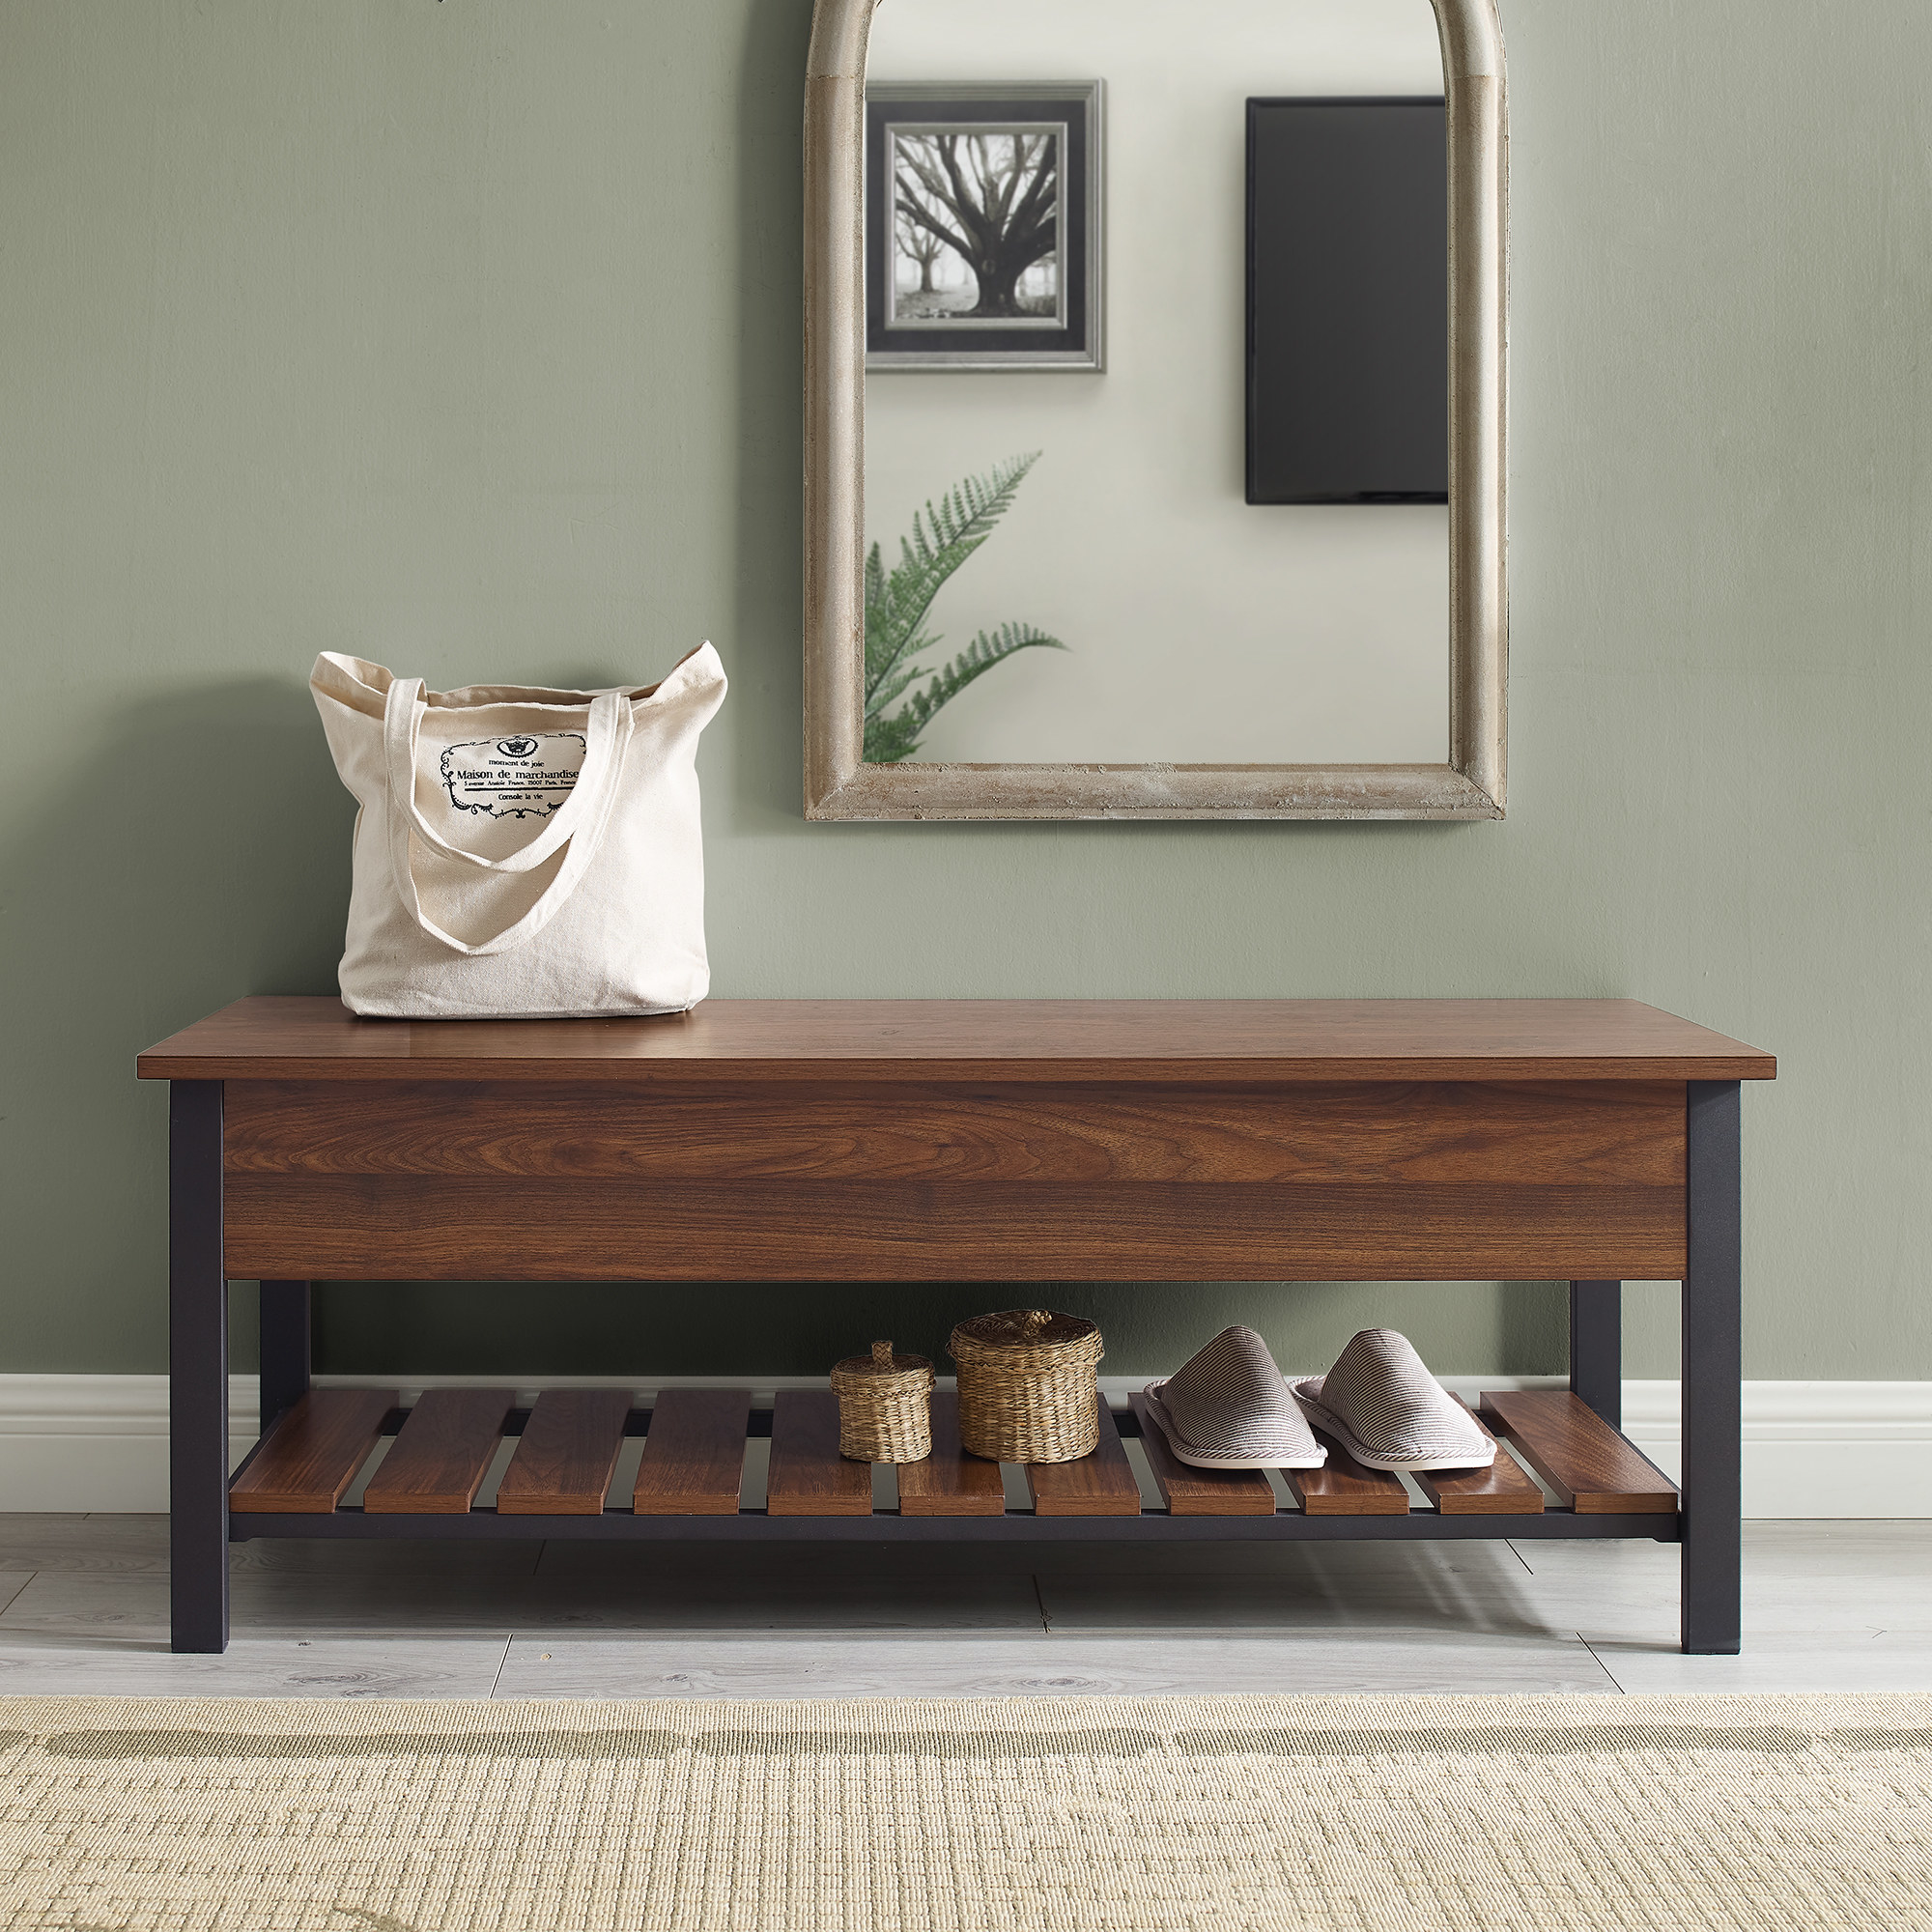 The dark wood bench in an entryway